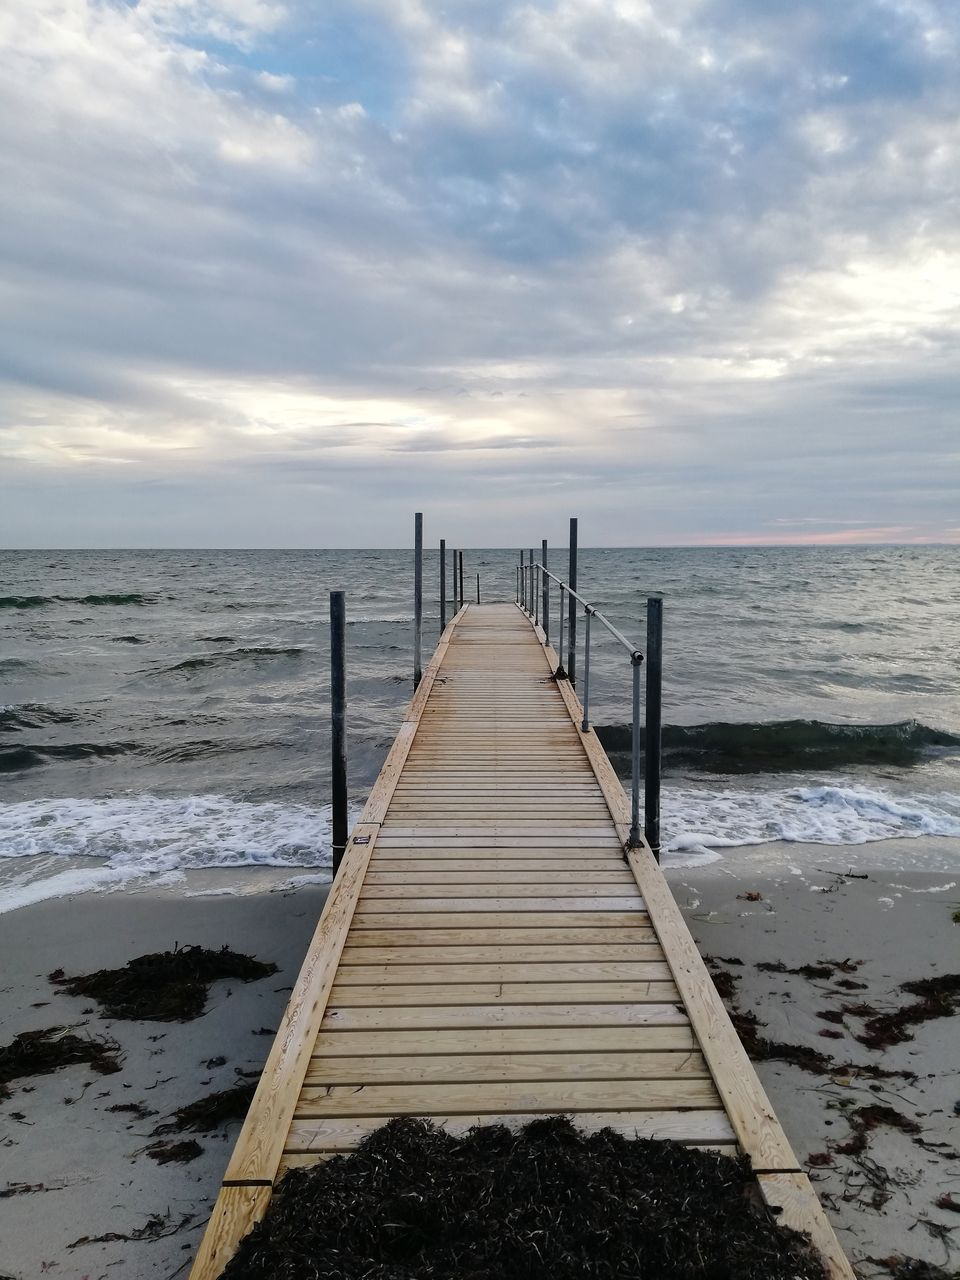 water, sea, sky, horizon, cloud - sky, horizon over water, beauty in nature, scenics - nature, beach, nature, pier, wood - material, direction, land, tranquility, tranquil scene, wave, jetty, the way forward, no people, diminishing perspective, outdoors, long